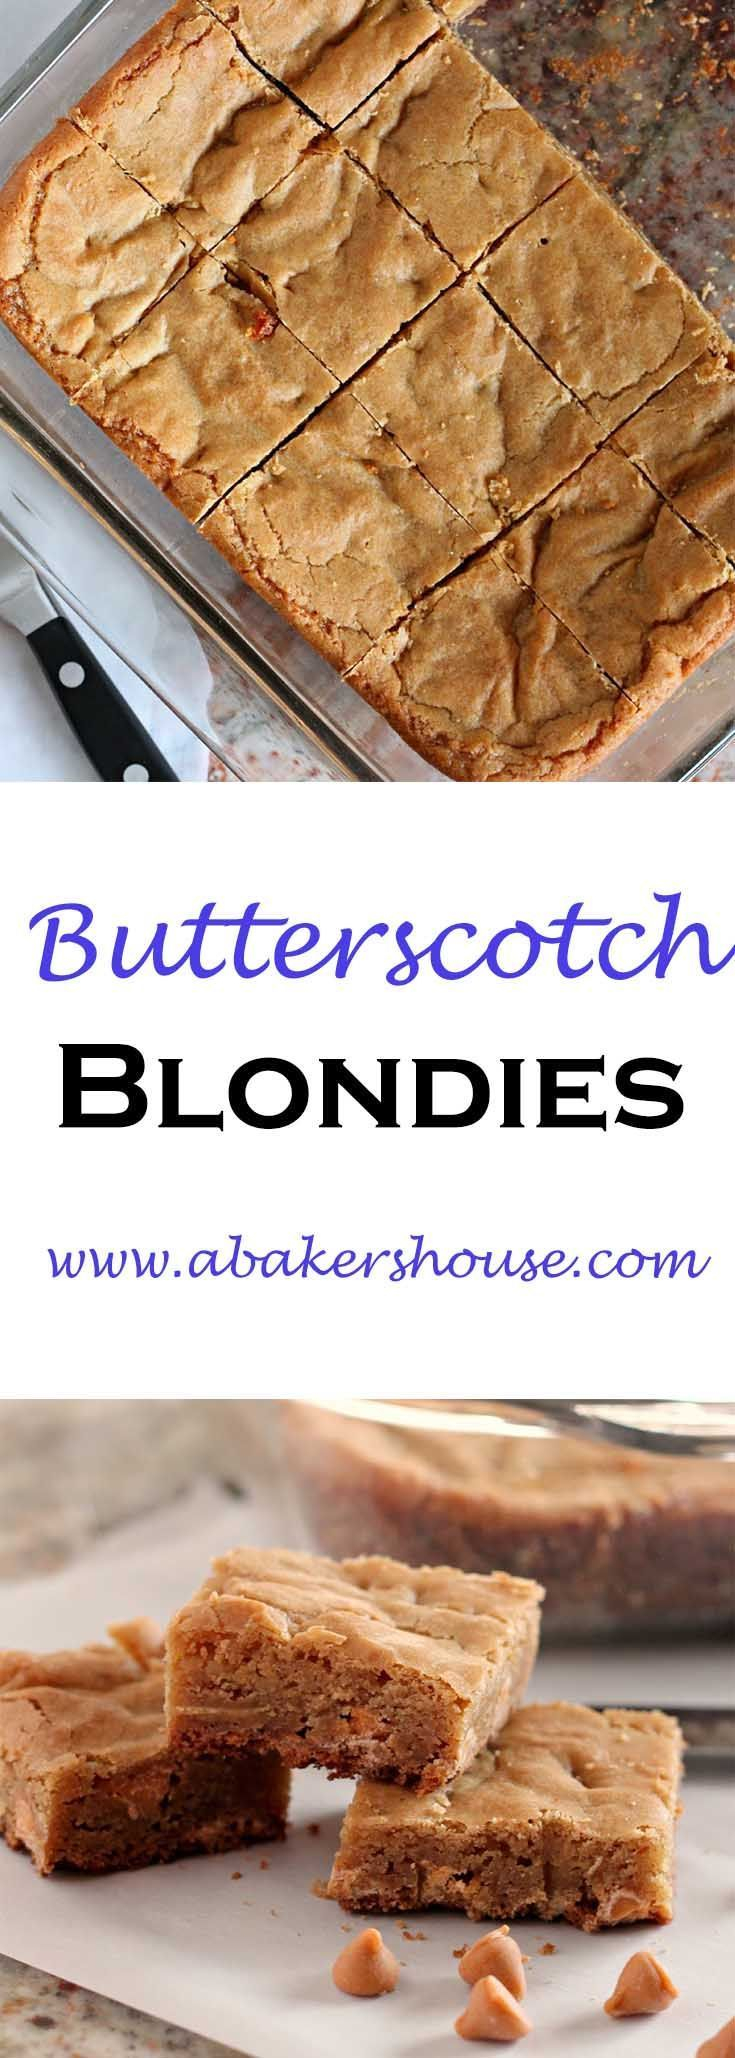 Butterscotch Blondies, a recipe from Cooking Light made by Holly Baker at www.abakershouse.com